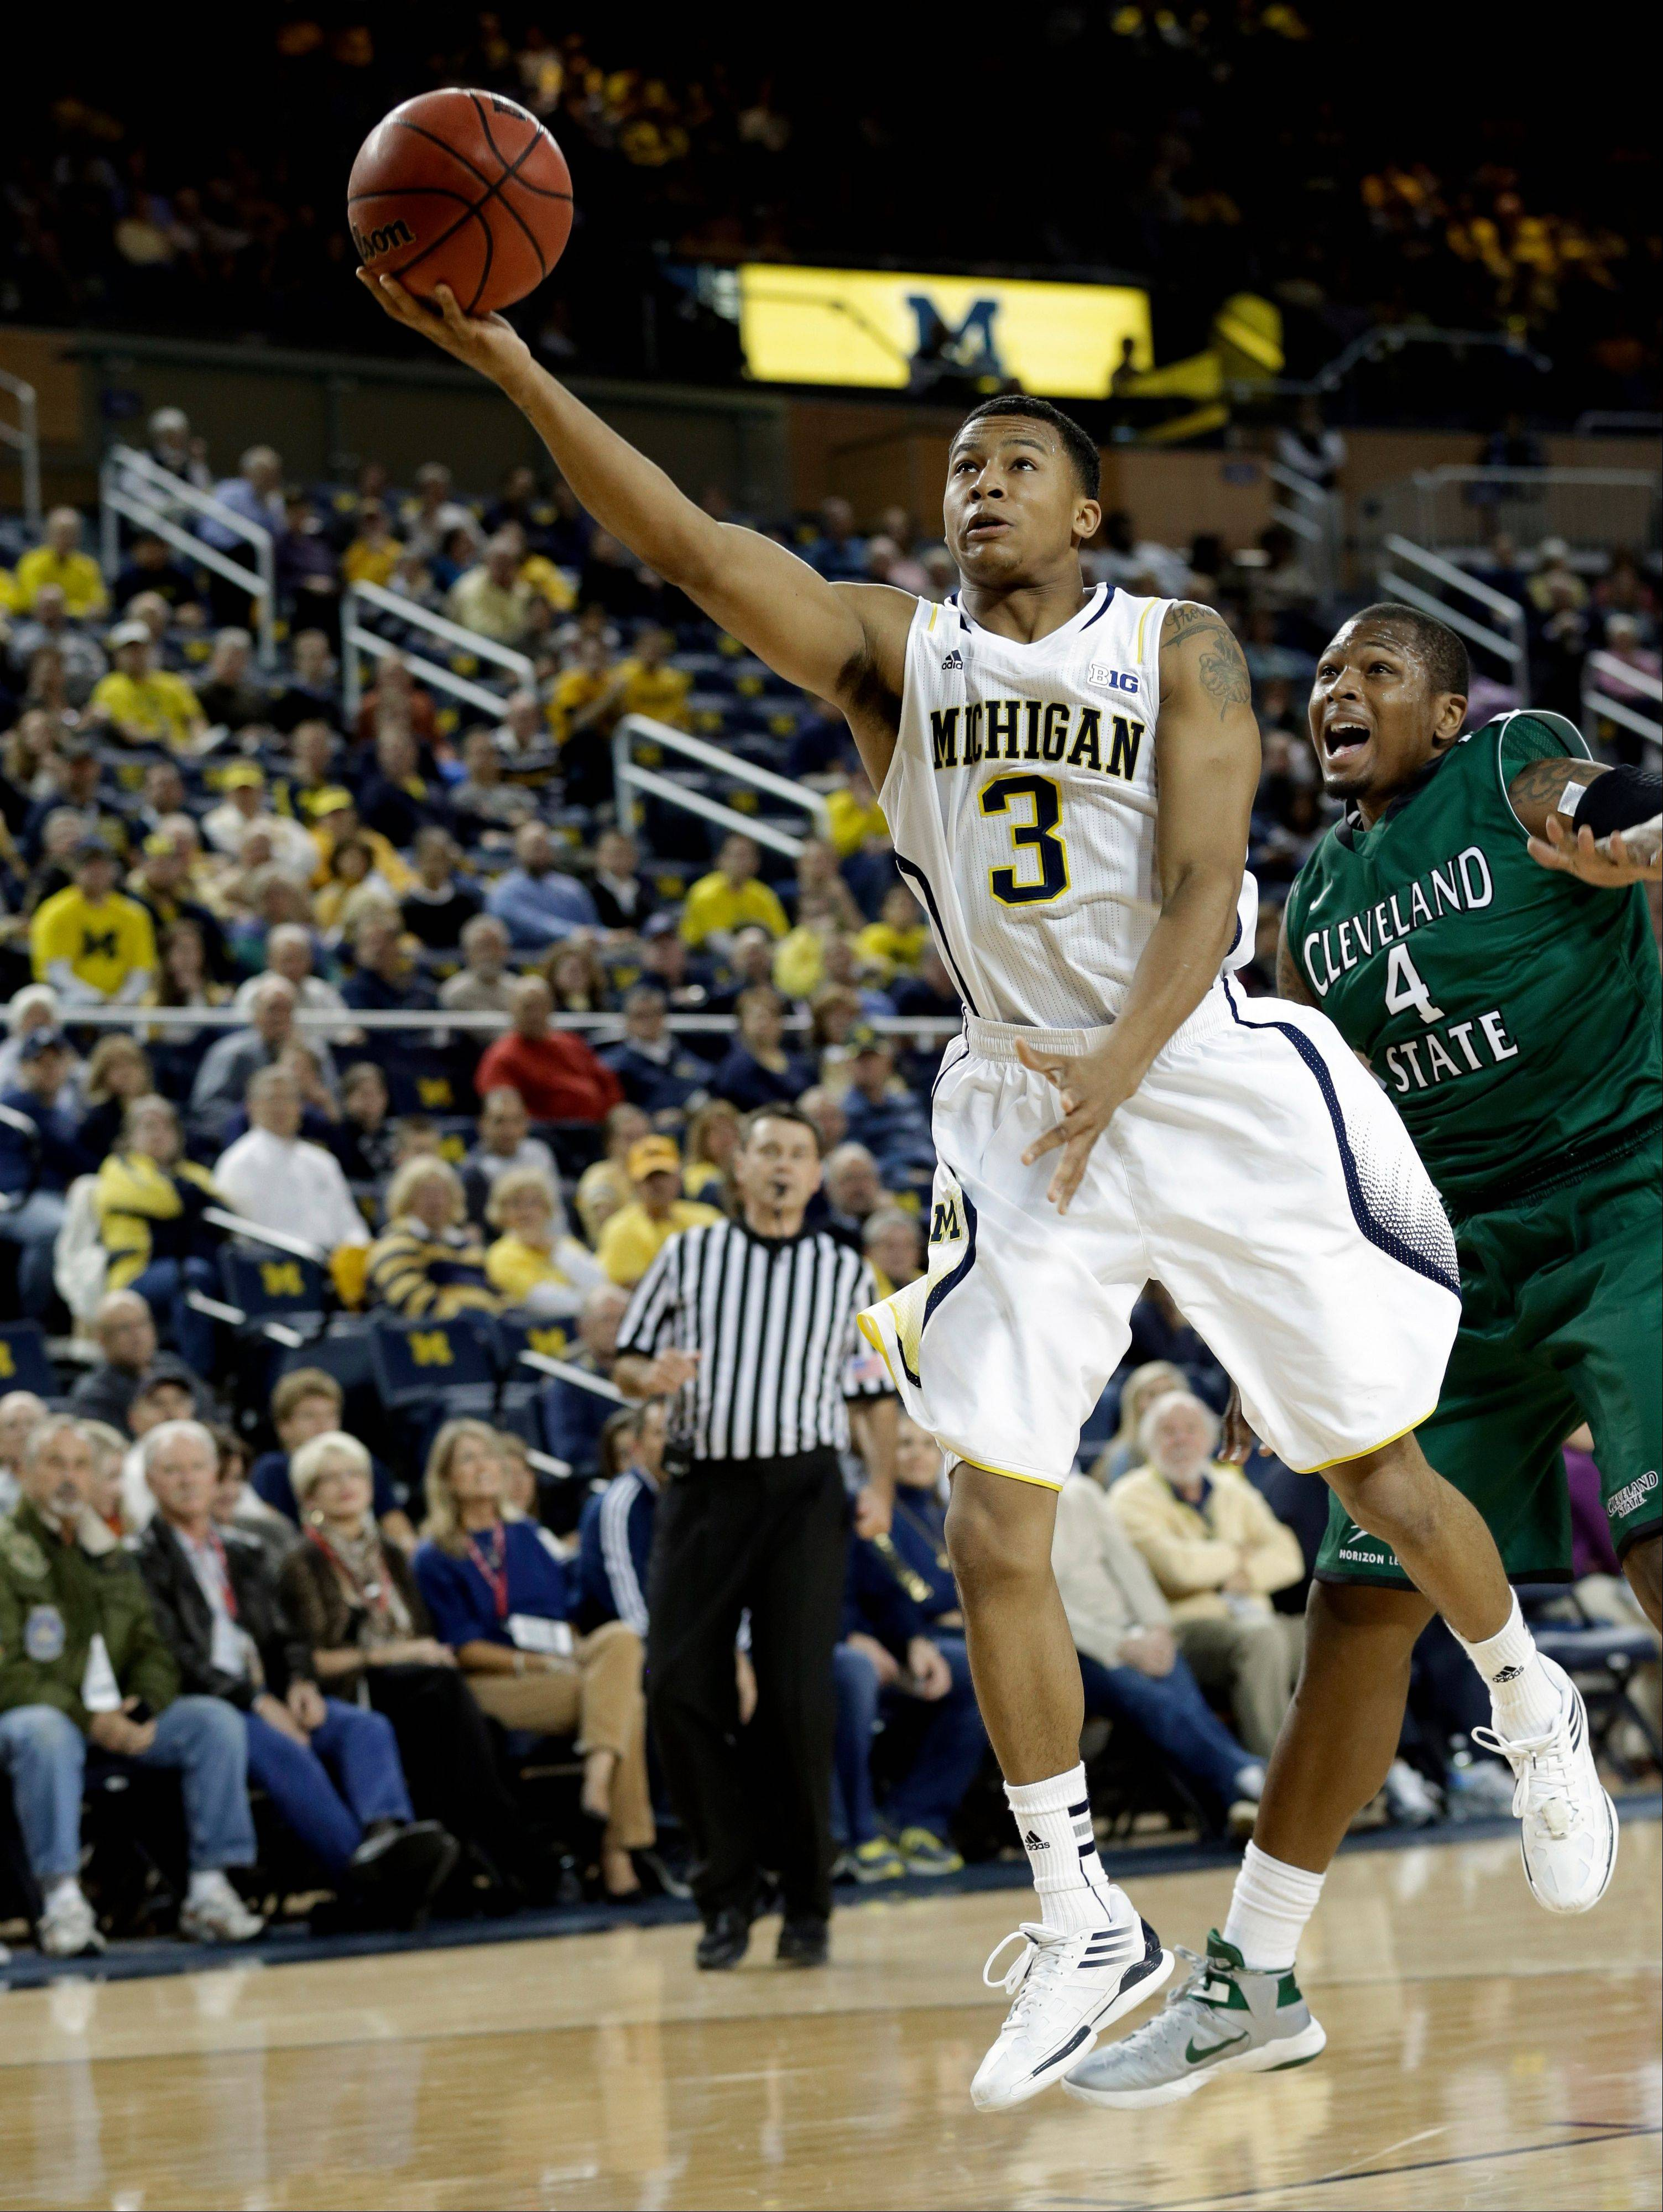 Michigan guard Trey Burke drives past Cleveland State center Devon Long Tuesday during the first half in the second-round of the NIT Season Tip-Off tournament at Crisler Arena in Ann Arbor, Mich.